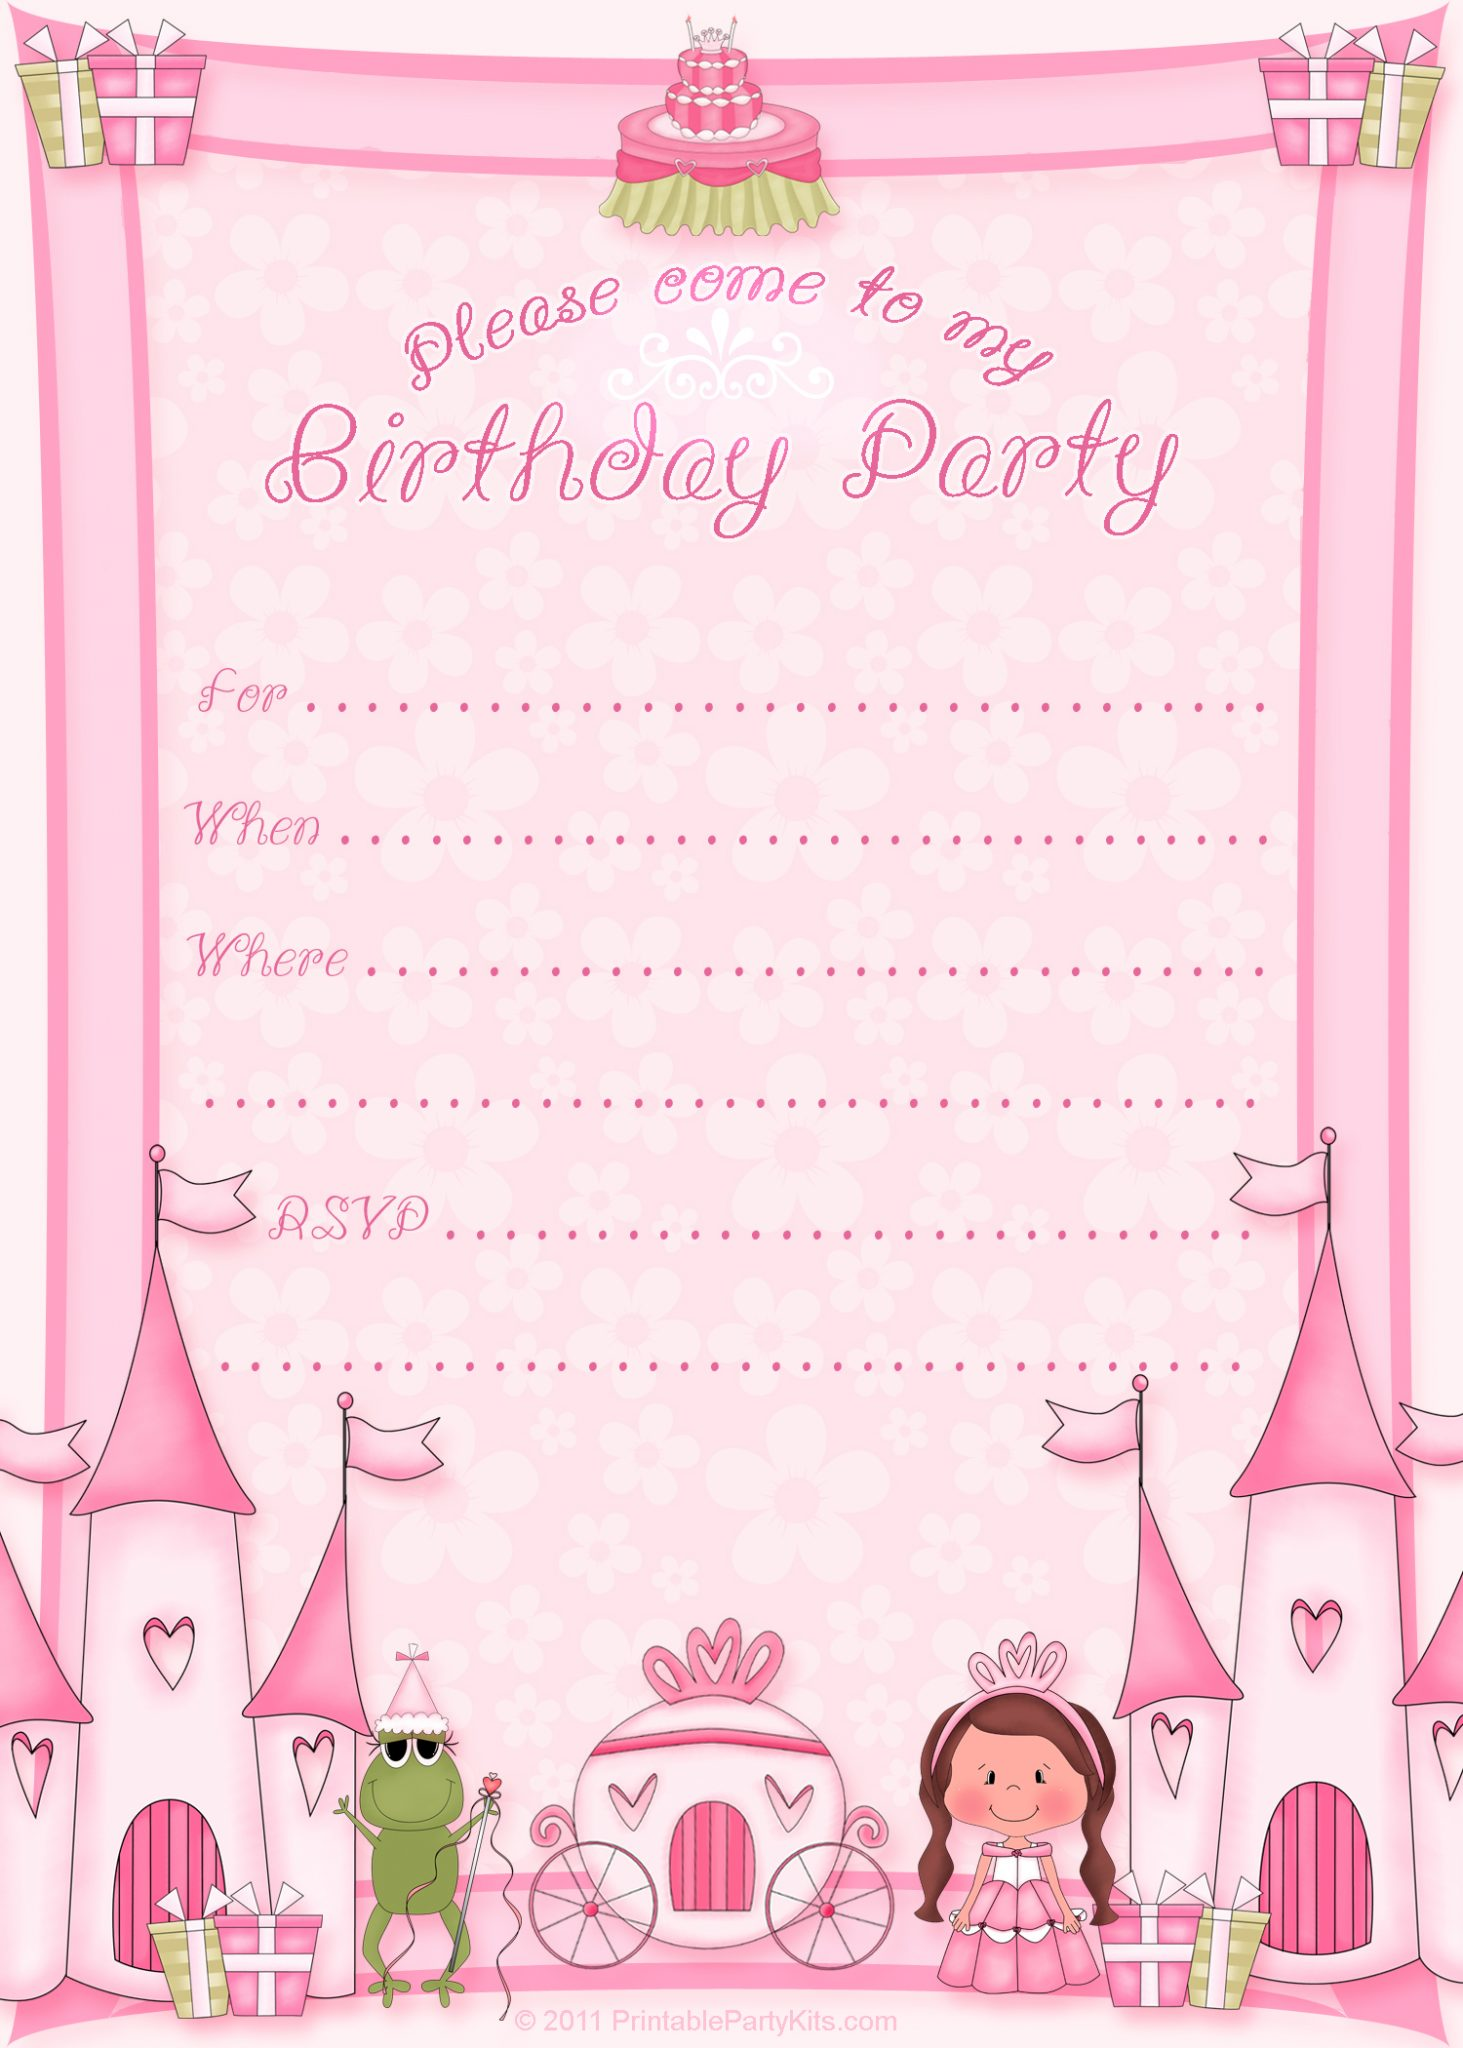 50 Free Birthday Invitation Templates You Will Love These – Printable 16th Birthday Invitations